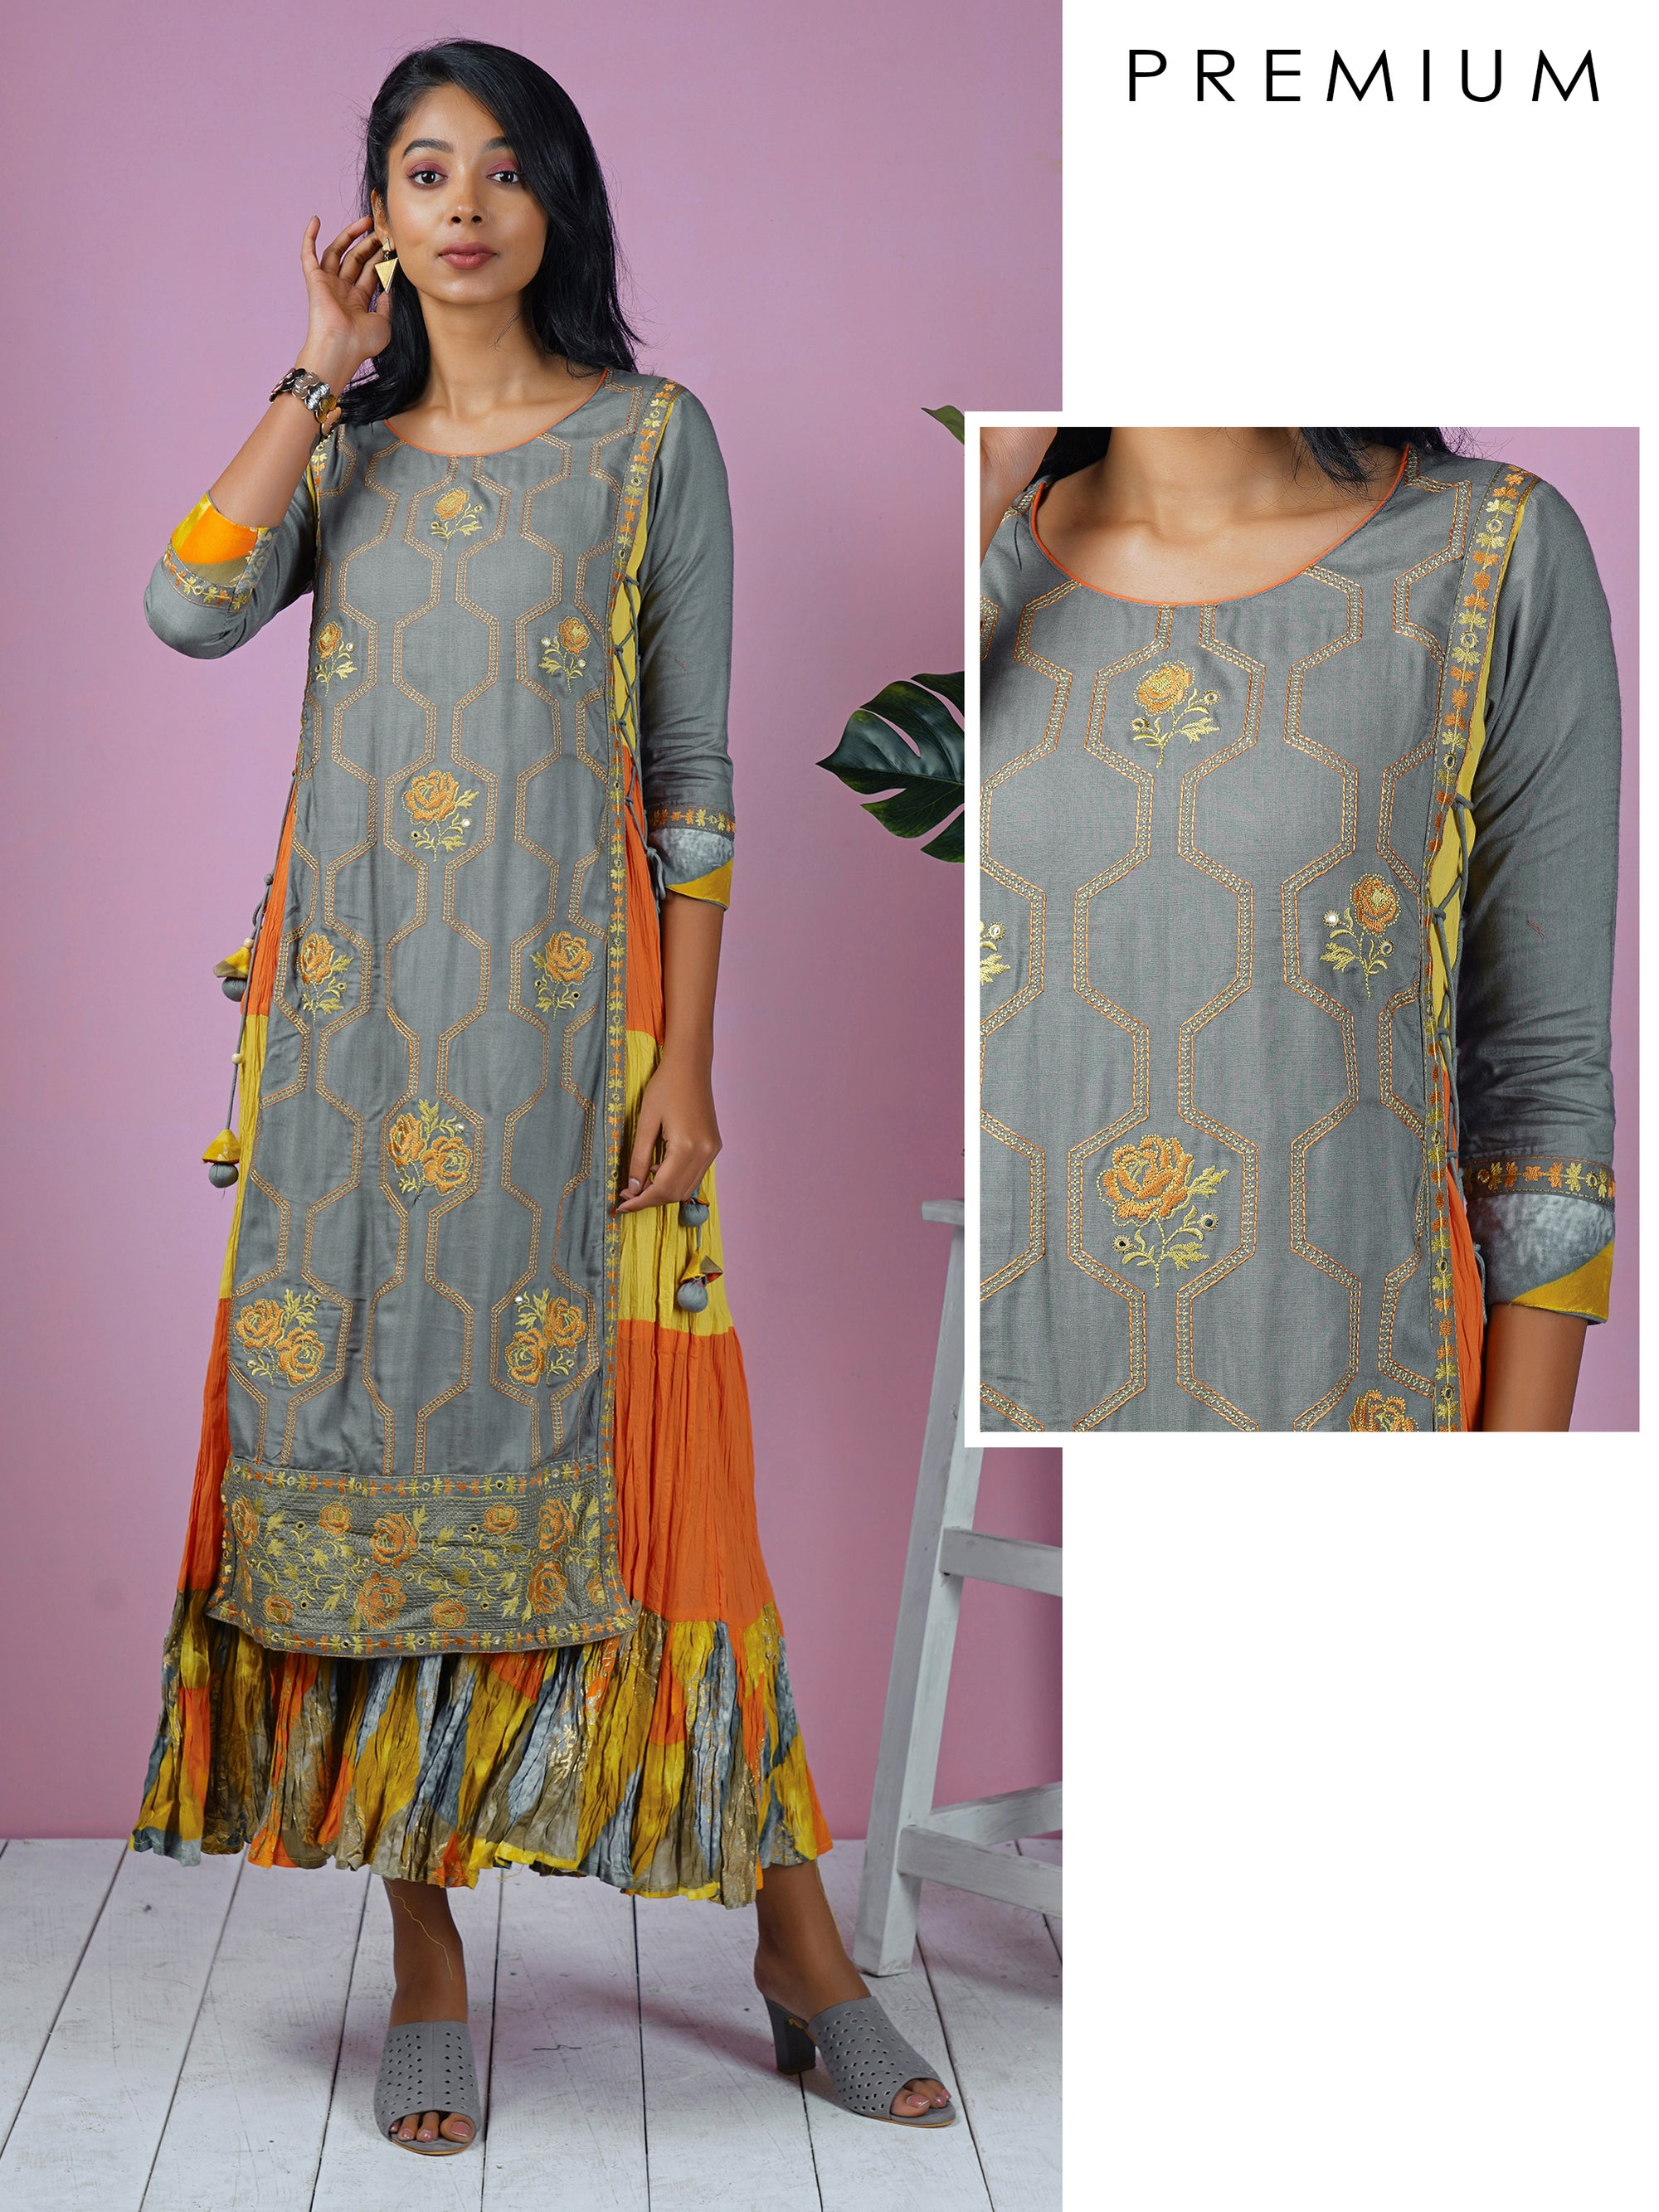 Geometric & Rose Embroidered, Layered & Tiered Kurta - Grey, Orange & Yellow